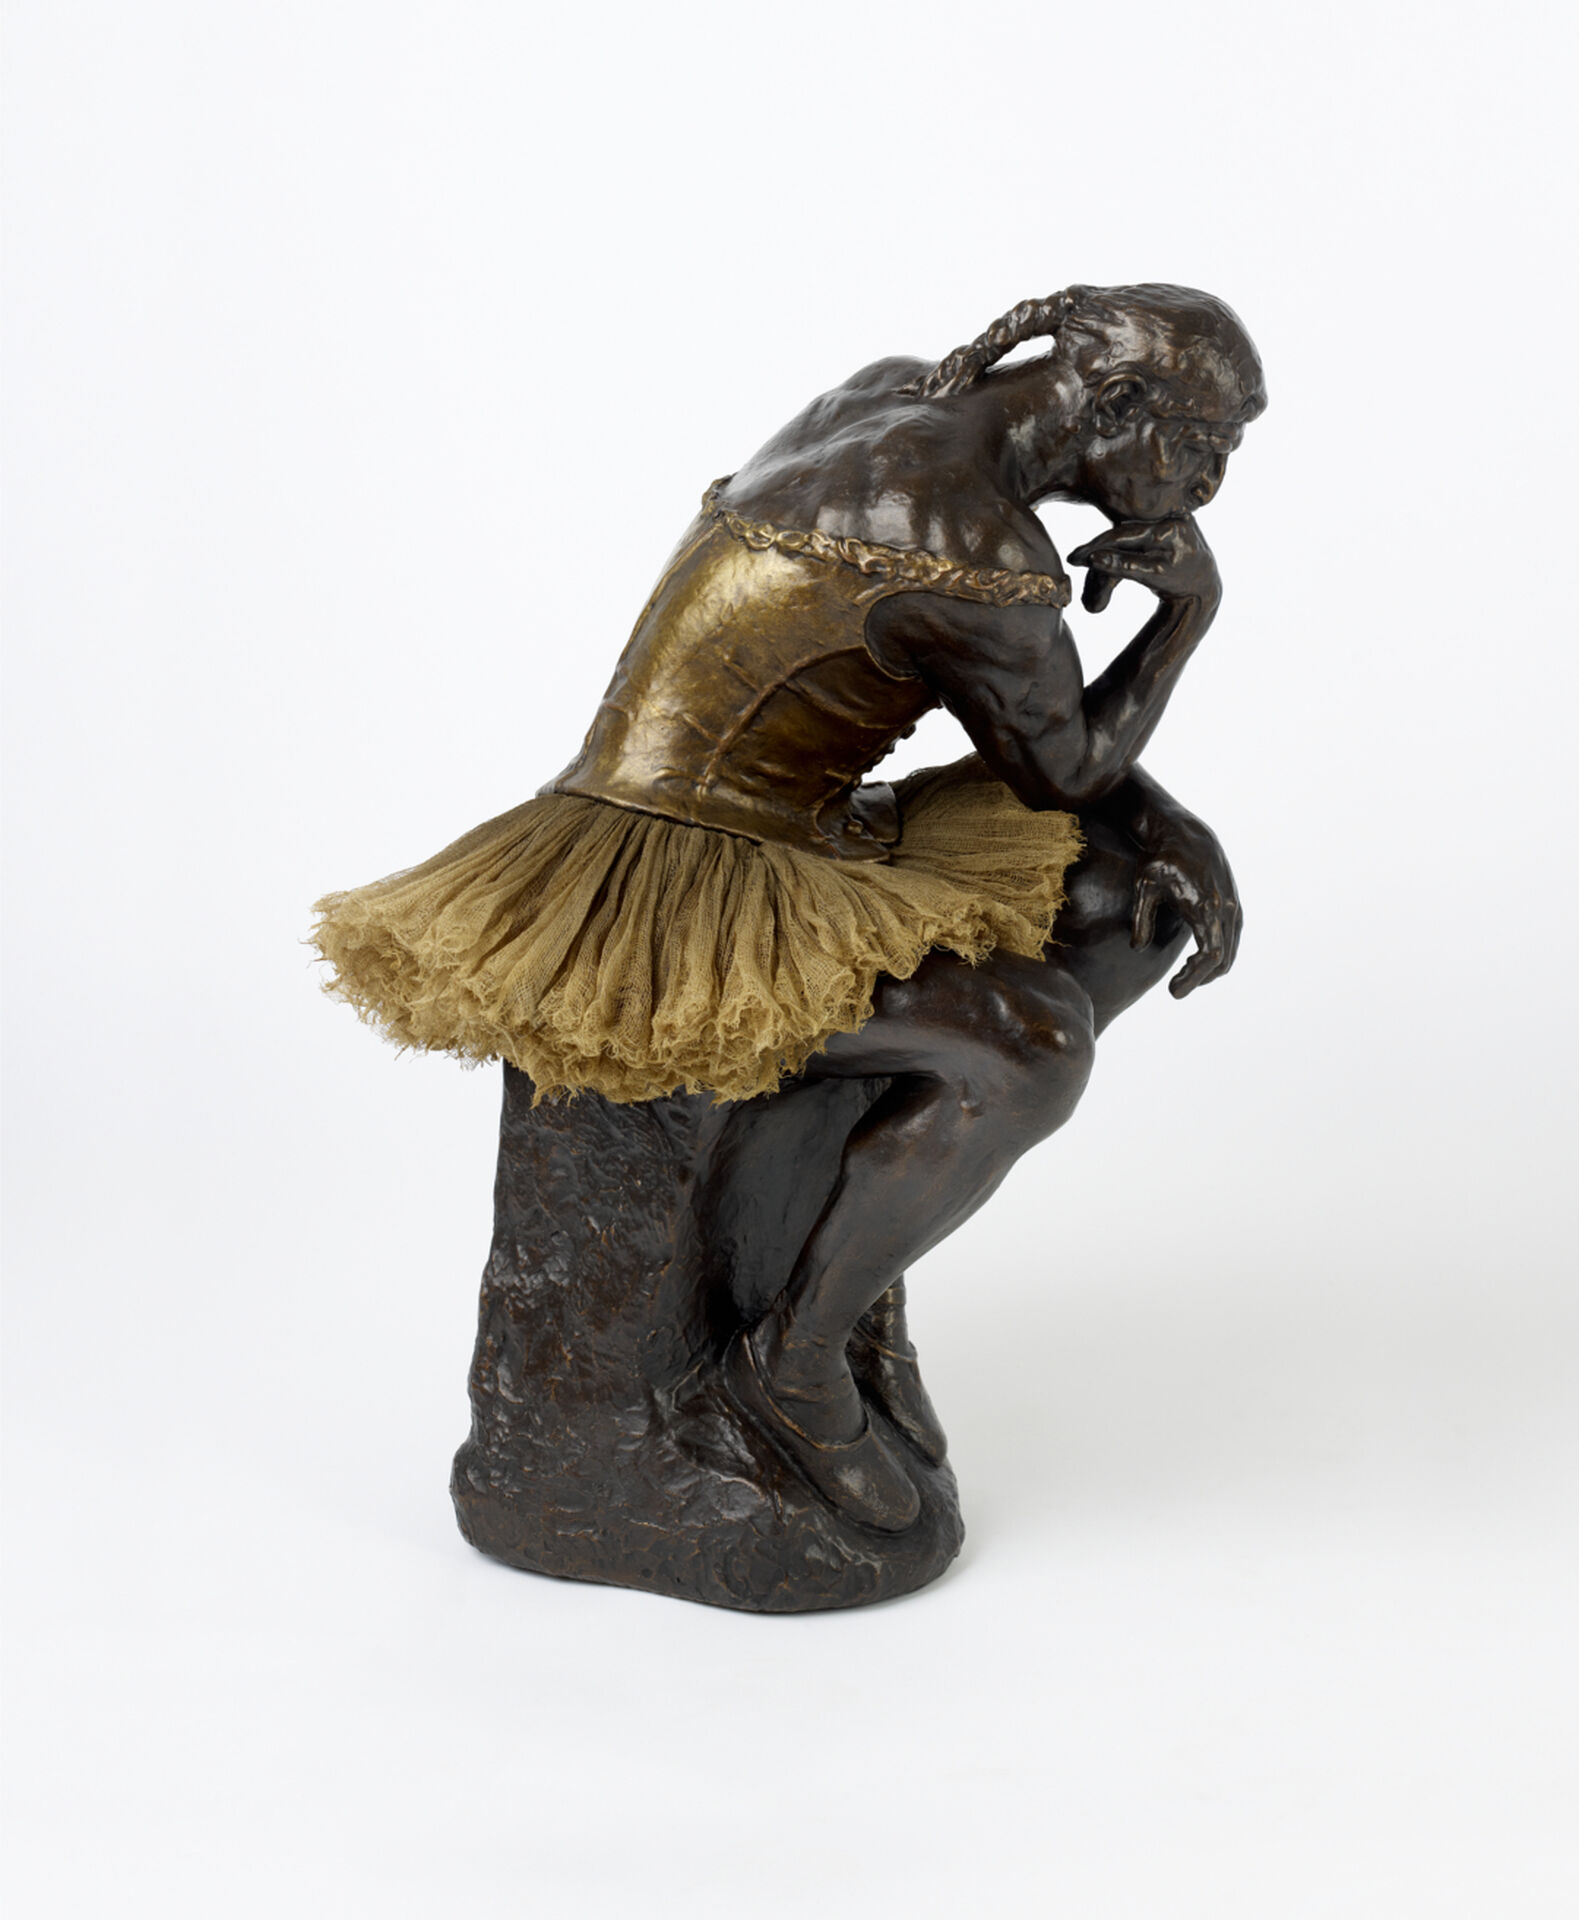 Nancy Fouts, Tänkaren (efter Rodin/Degas), 2014. Brons och florstyg. Nancy Fouts' Private Collection. © Nancy Fouts. Photo: Dominic Lee.